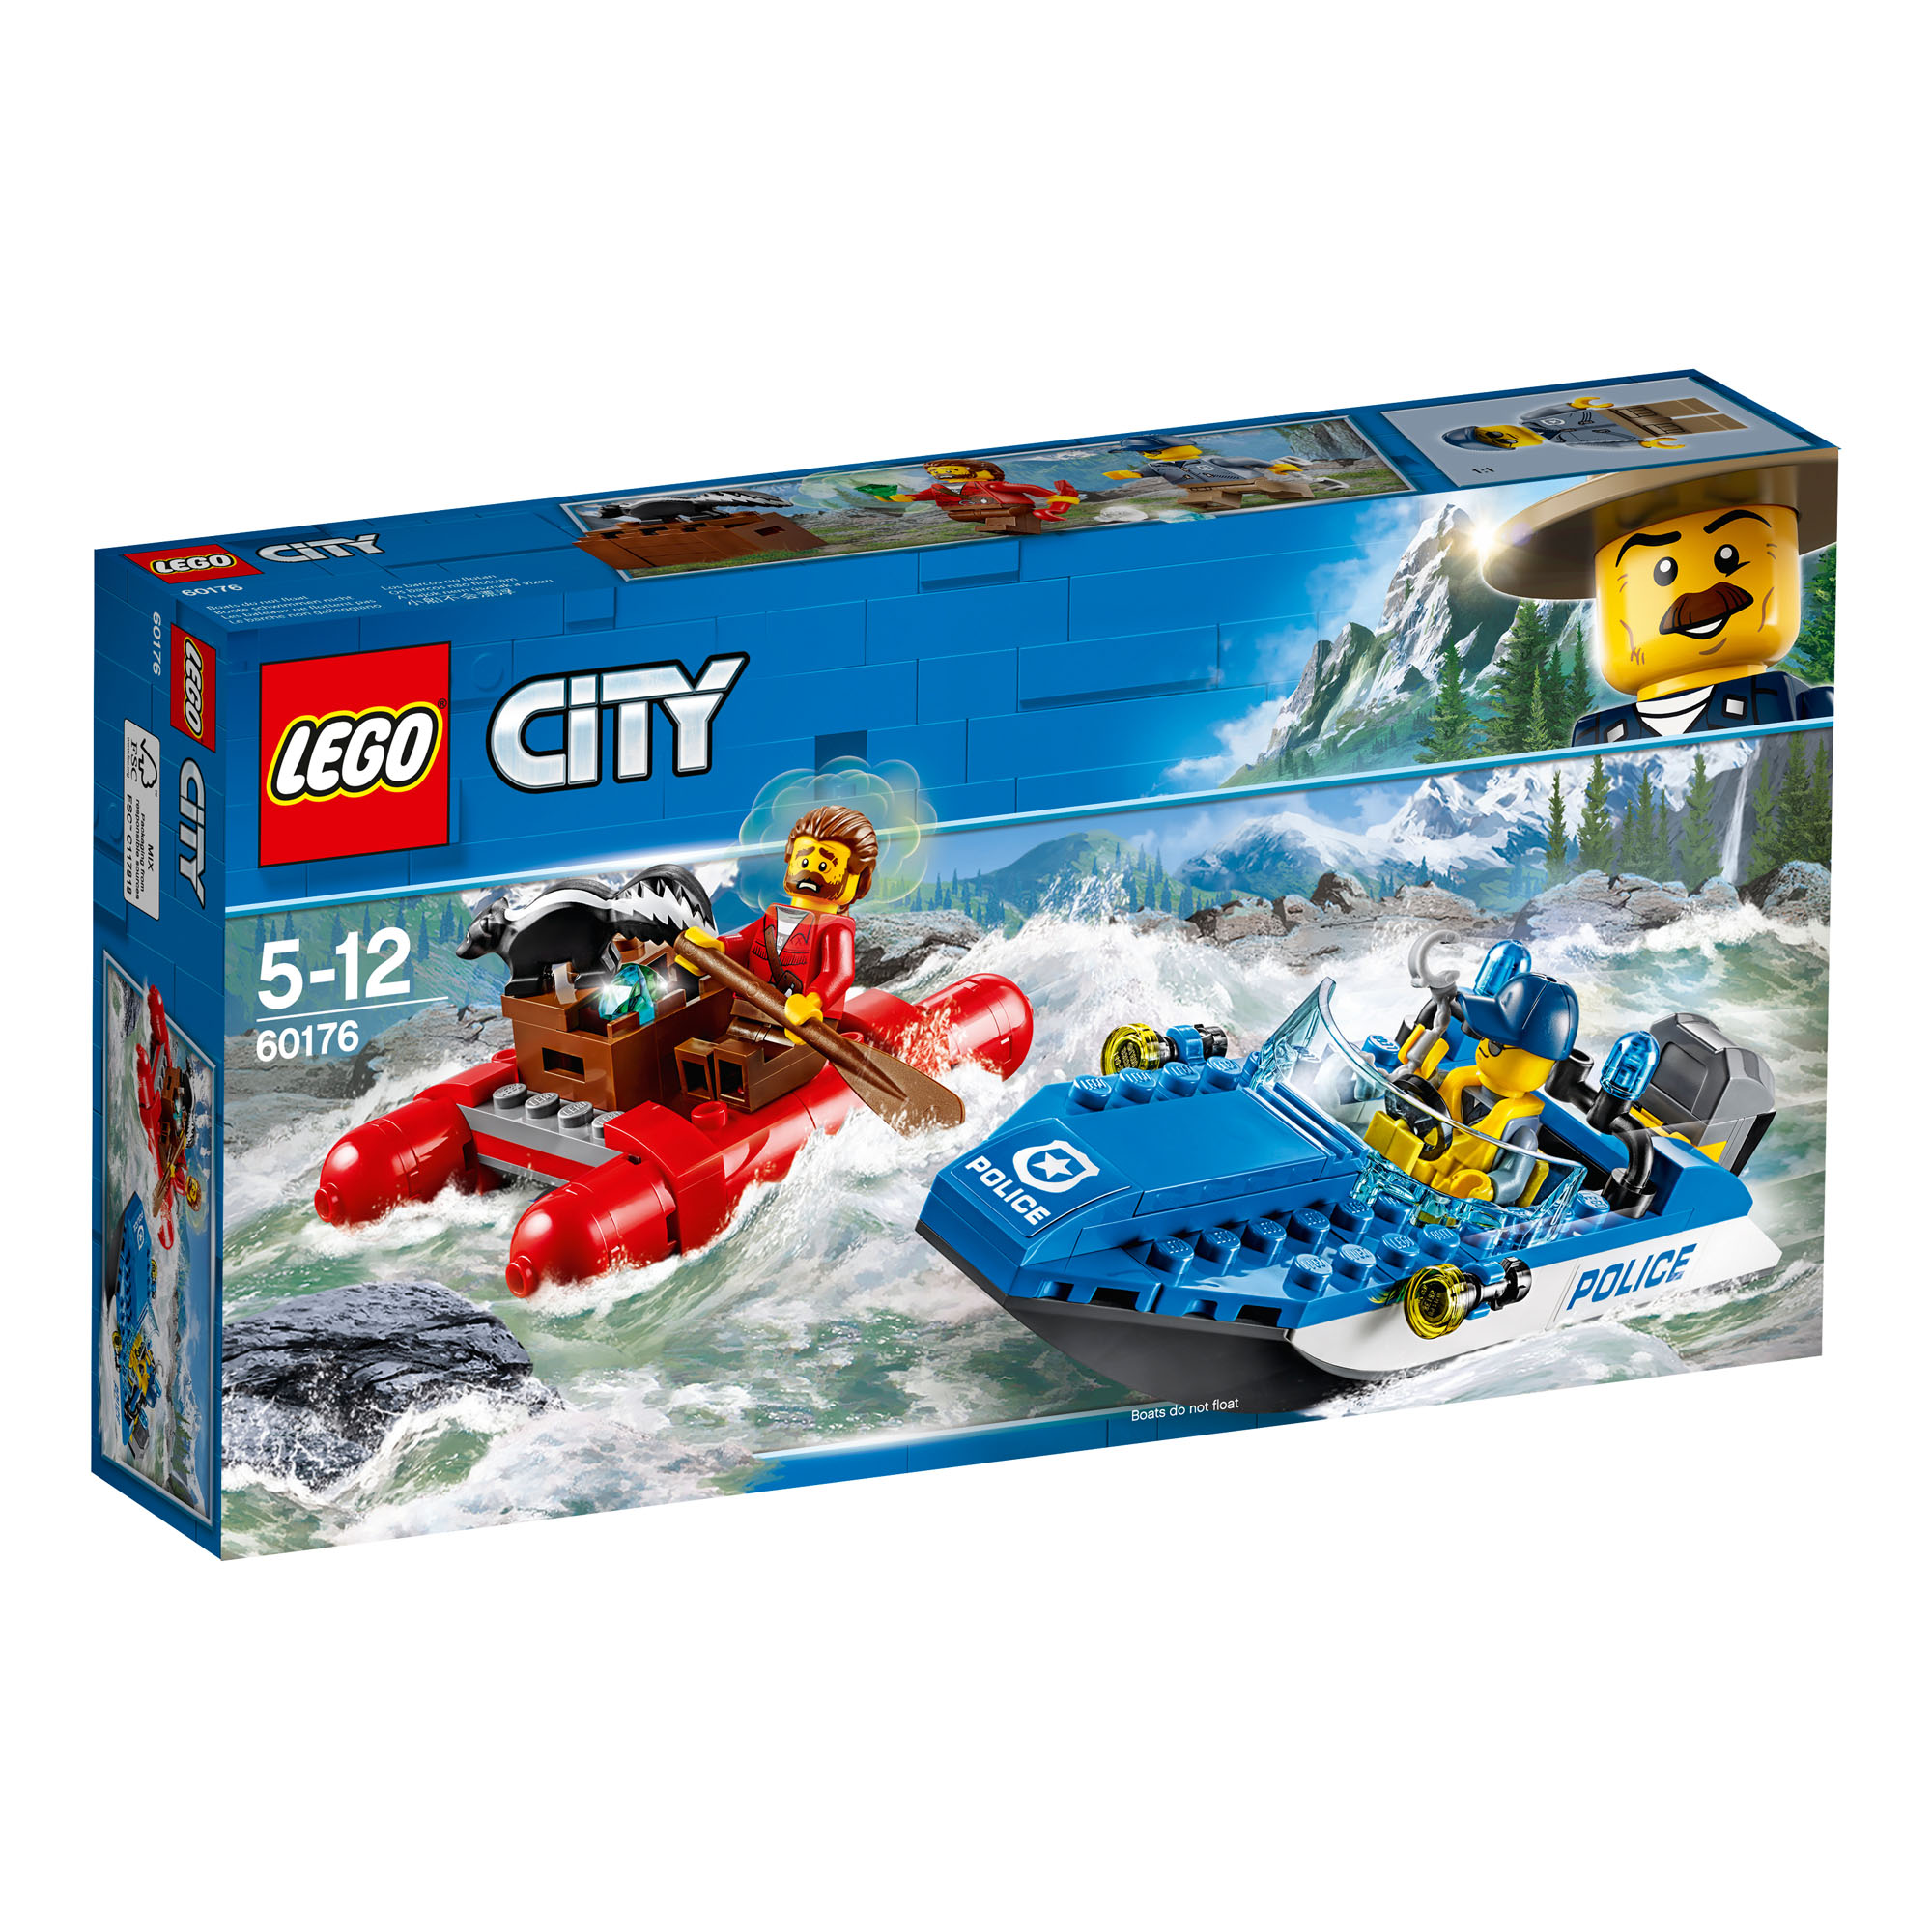 60176 lego city police wild river escape 126 pieces age 5 new release for 2018 - Lgo City Police